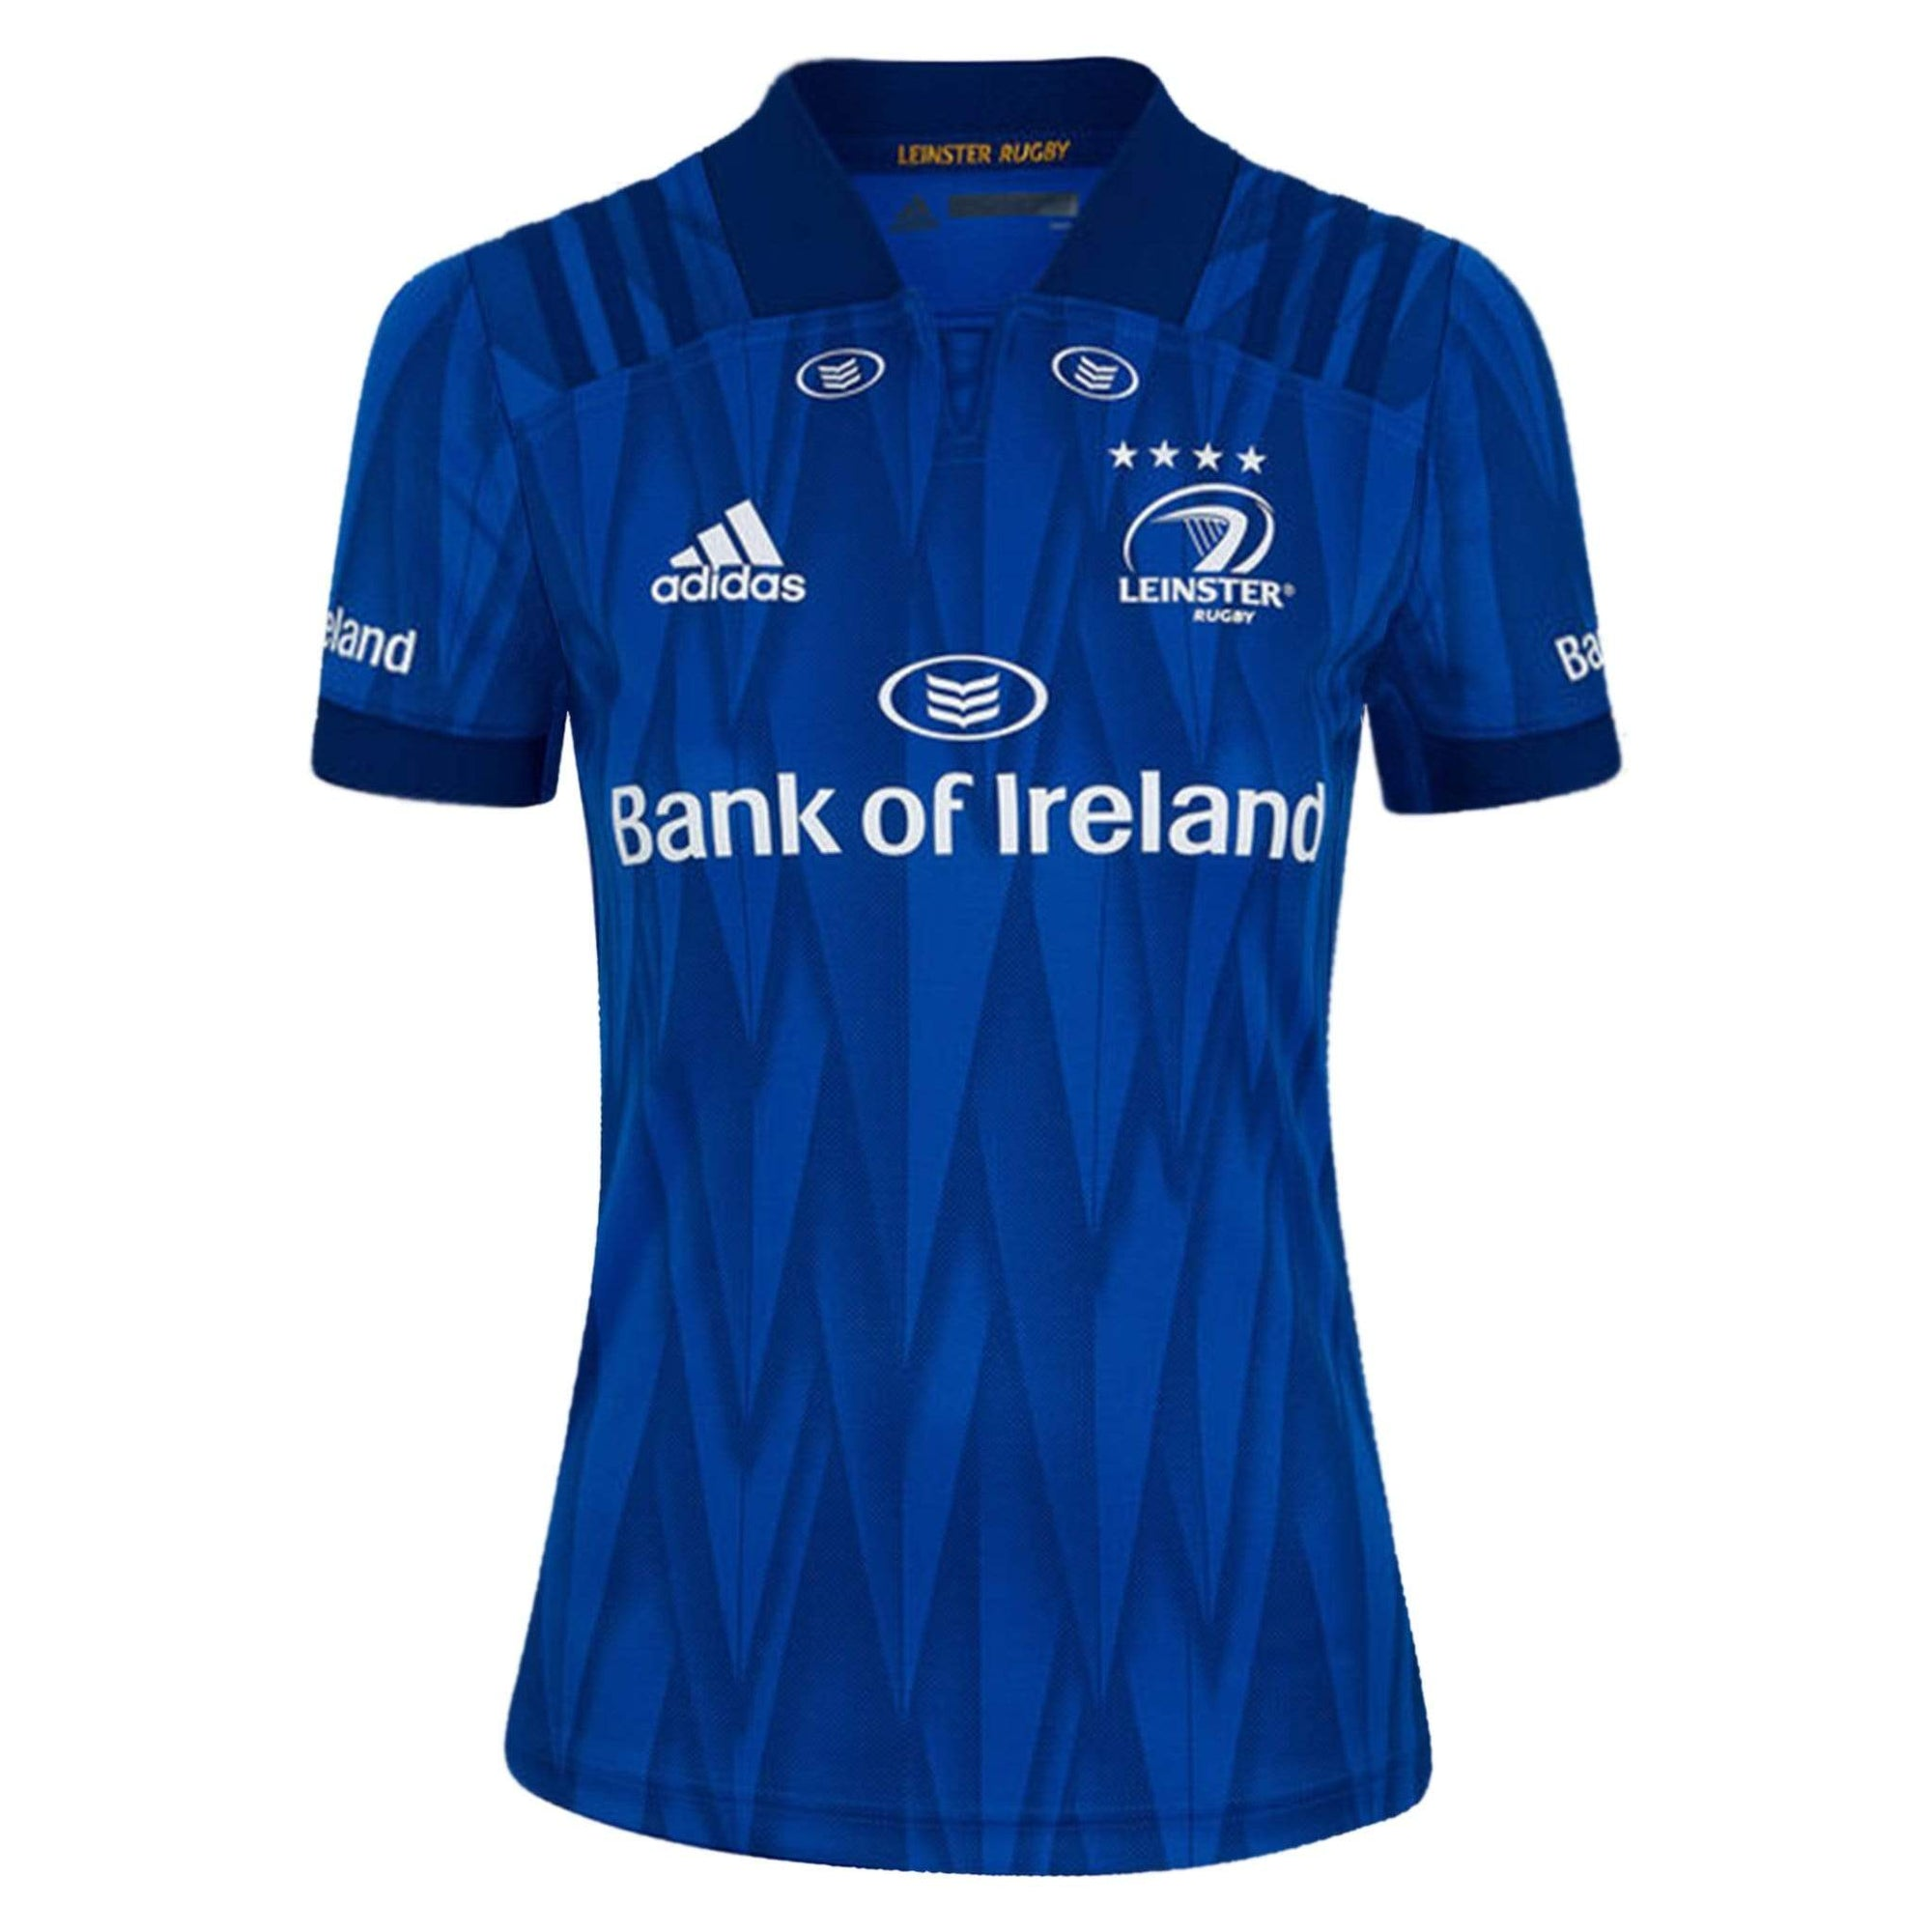 Adidas Women's Leinster Rugby Home Jersey Blue Front